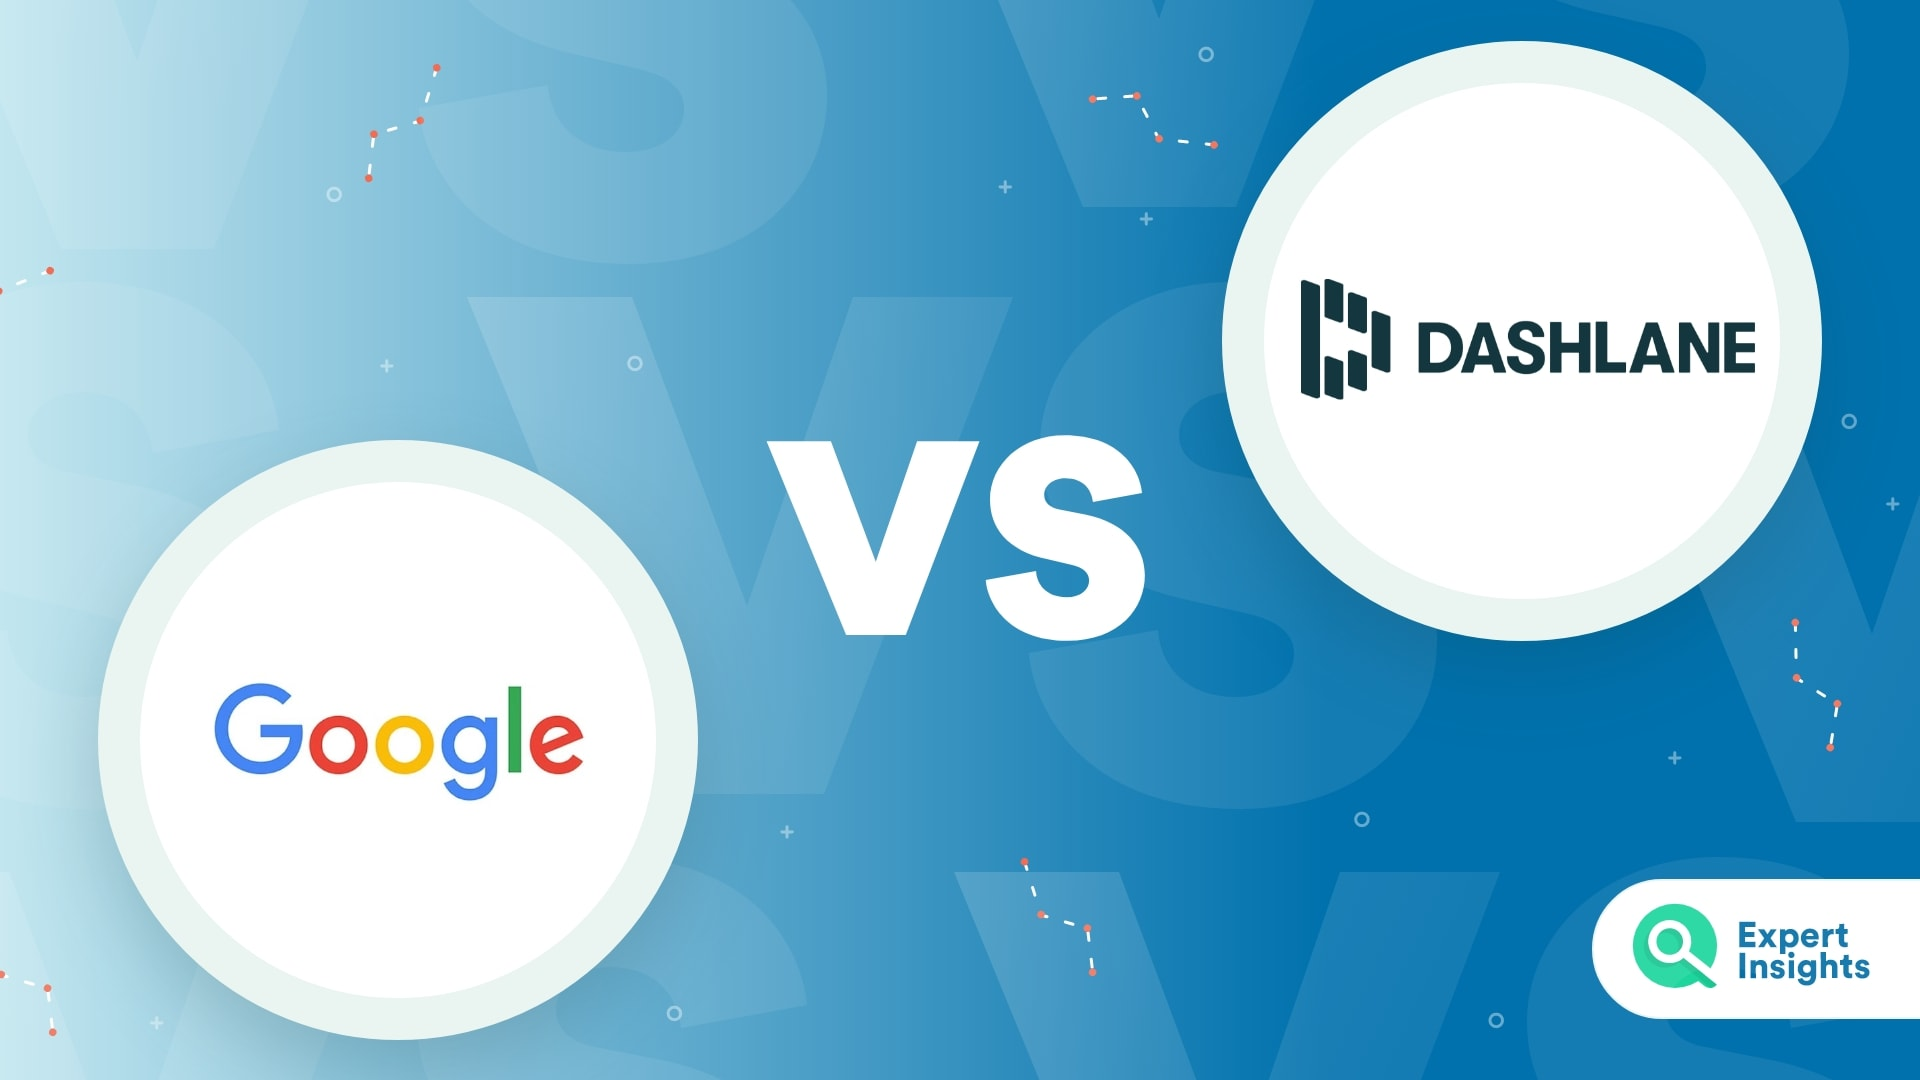 Dashlane Vs Google Password Management Comparison - Expert Insights